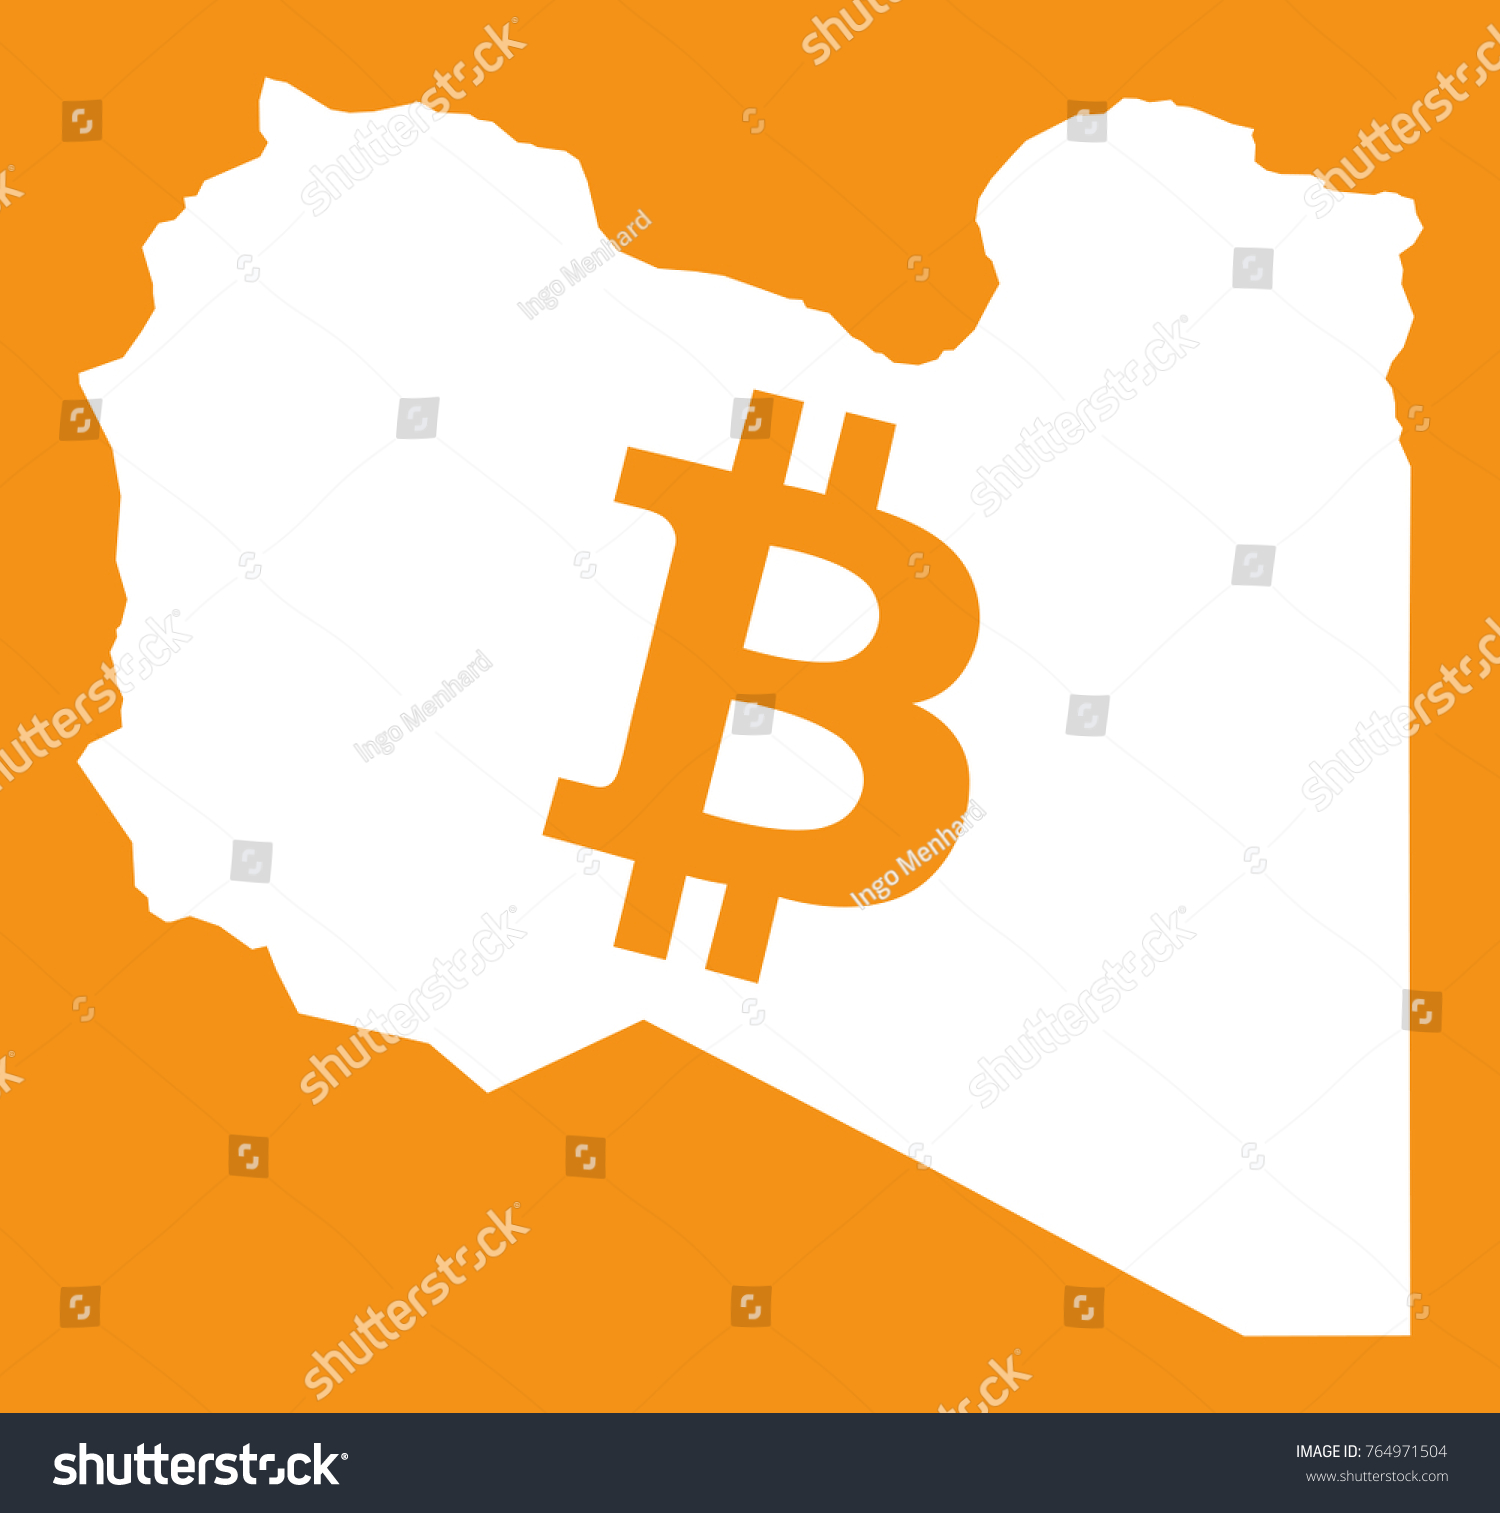 Libya map bitcoin crypto currency symbol stock vector 764971504 libya map with bitcoin crypto currency symbol illustration biocorpaavc Image collections